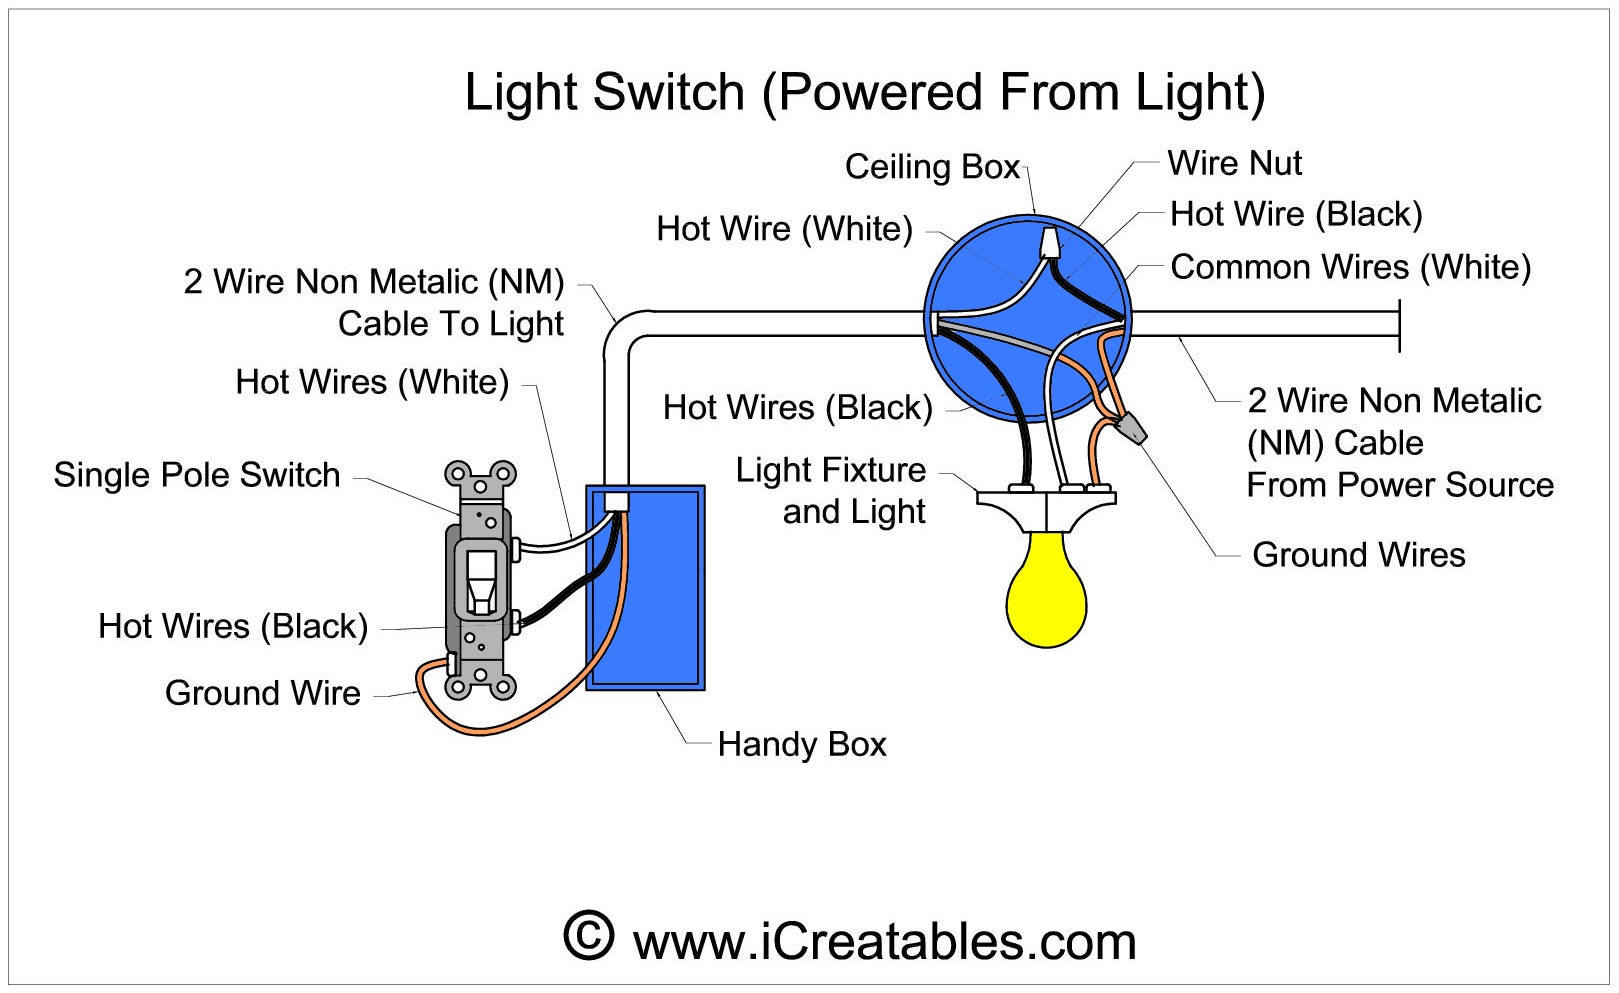 1970 Chevelle Light Switch Diagram - Www.toyskids.co • on 1971 chevelle parts, 1971 chevelle antenna, 1971 chevelle starter, 1967 chevelle horn diagram, 1971 chevelle steering, 1971 chevelle headlight, 1971 chevelle engine, 1971 chevelle fuse box diagram, 1971 chevelle body, 1971 chevelle schematic, 1971 chevelle blue, 1971 chevelle malibu, 1971 chevelle black, 1971 chevelle door, 1971 chevelle vinyl top, 1971 chevelle transmission, 1971 chevelle frame, 1971 chevelle air cleaner, 1971 chevelle rear, 1971 chevelle ignition switch,